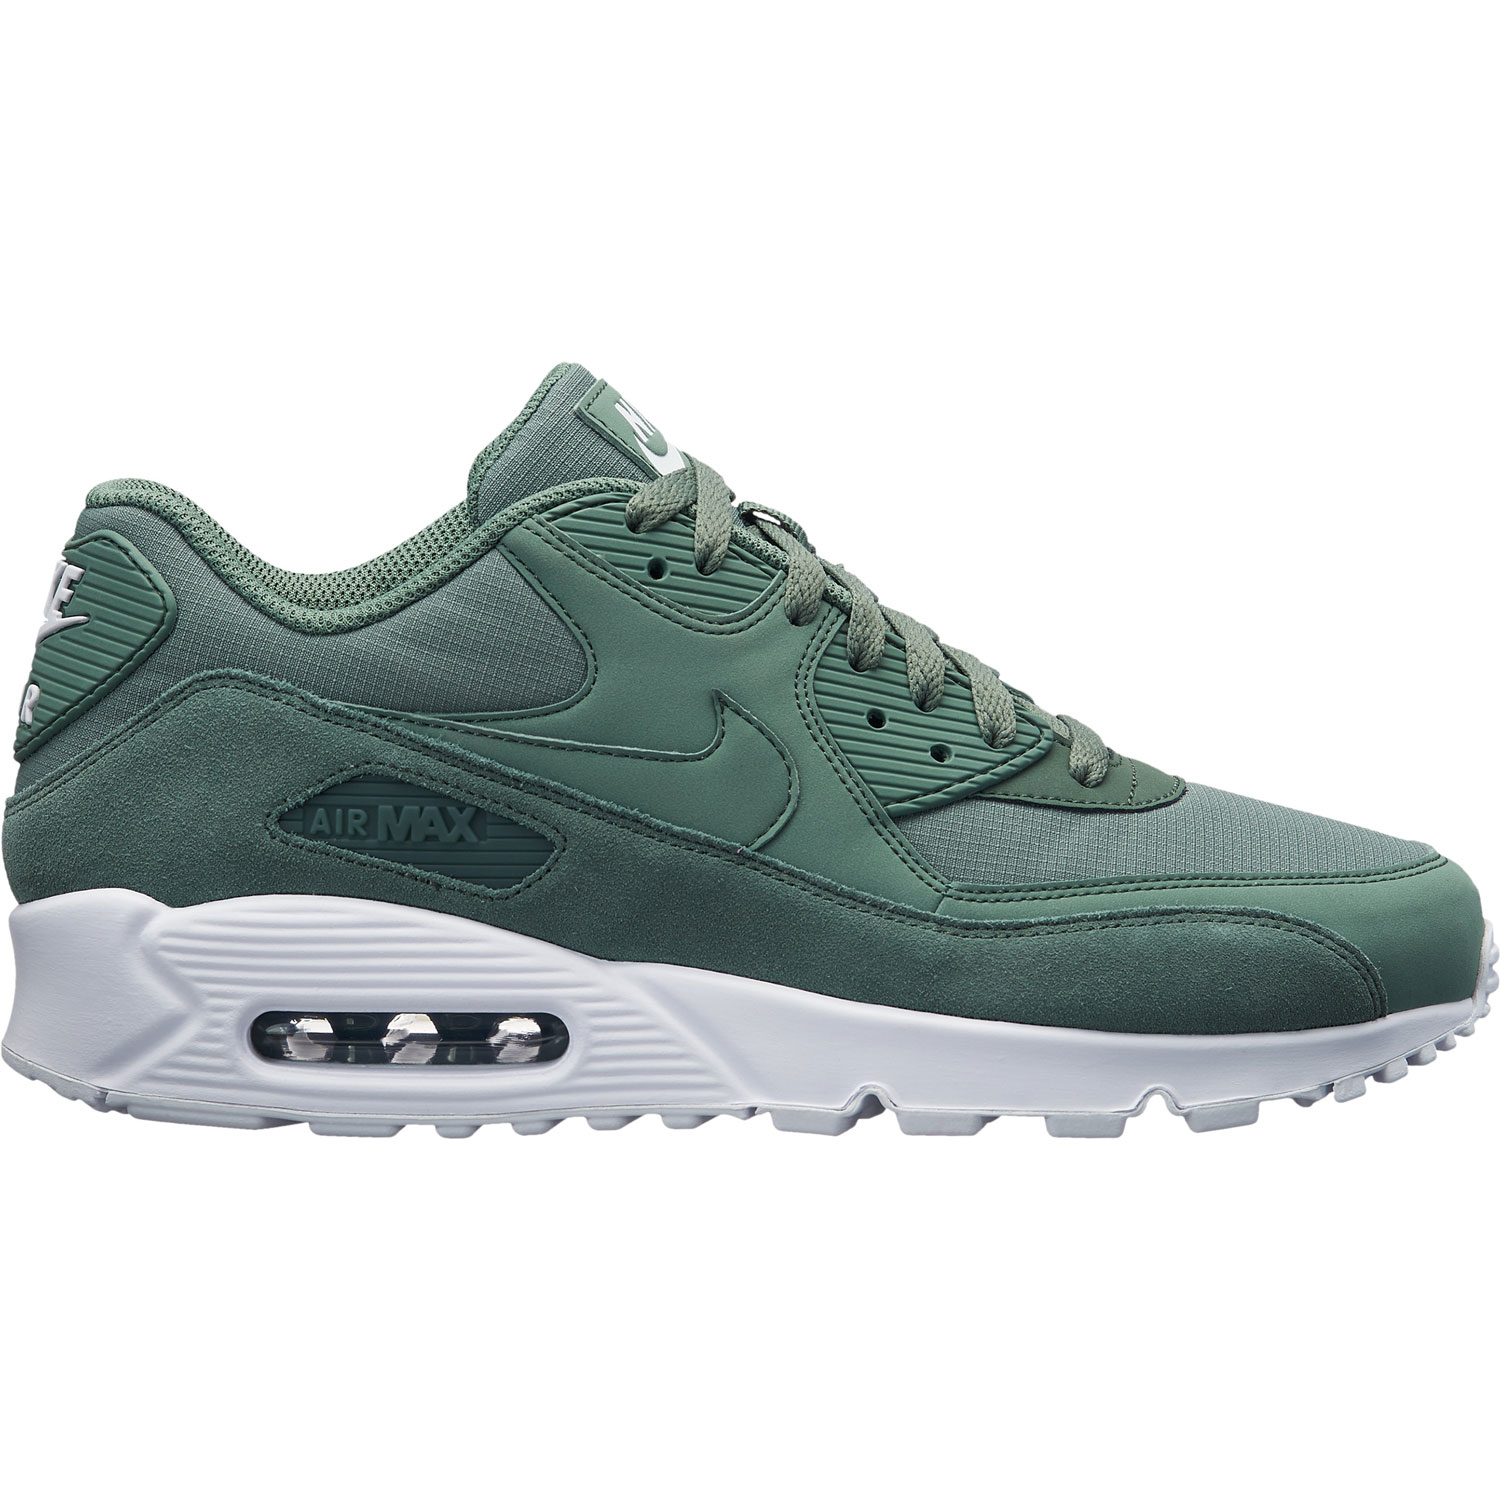 Nike Air Max 90 Essential clay green AJ1285 300